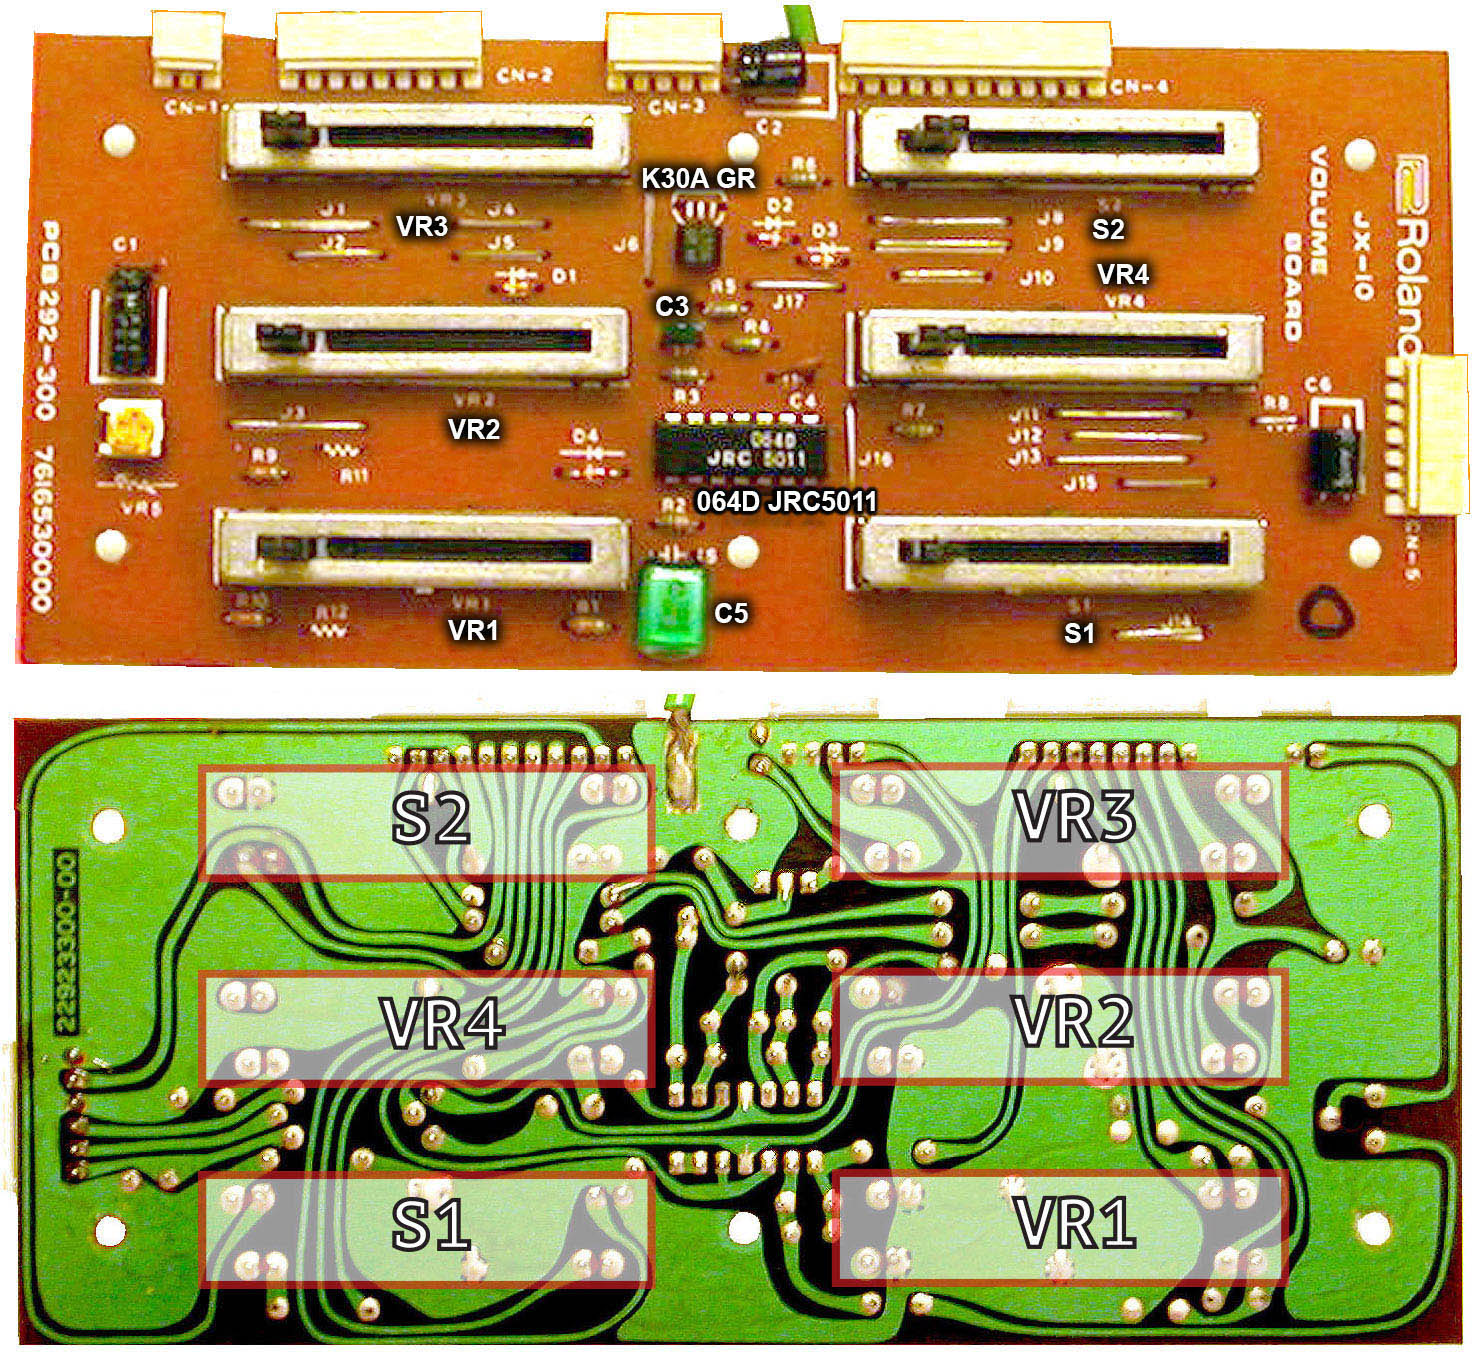 Roland Super Jx 10 And Mks 70 Info This Is The Wiring Schematic For Ev5 Expression Footpedal Volume Board Small